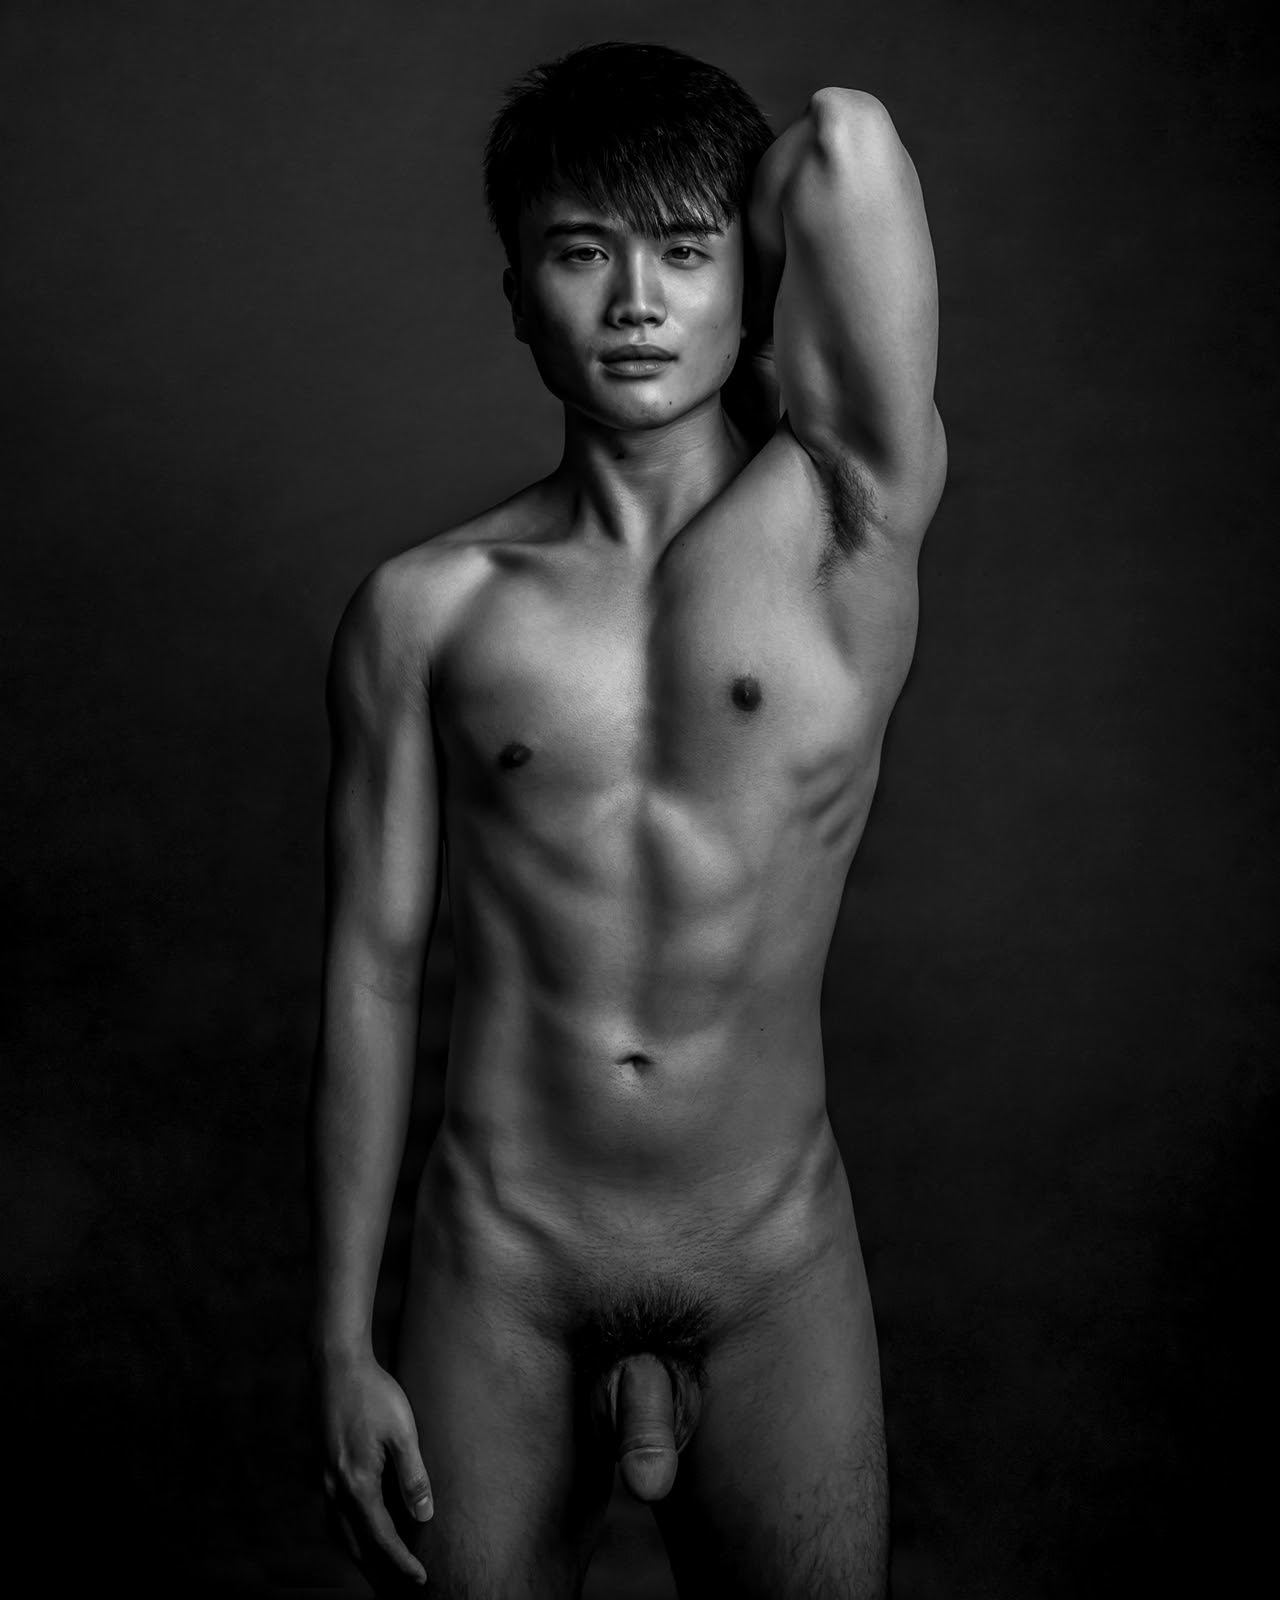 FouR NudeS, by Wong KB (NSFW).